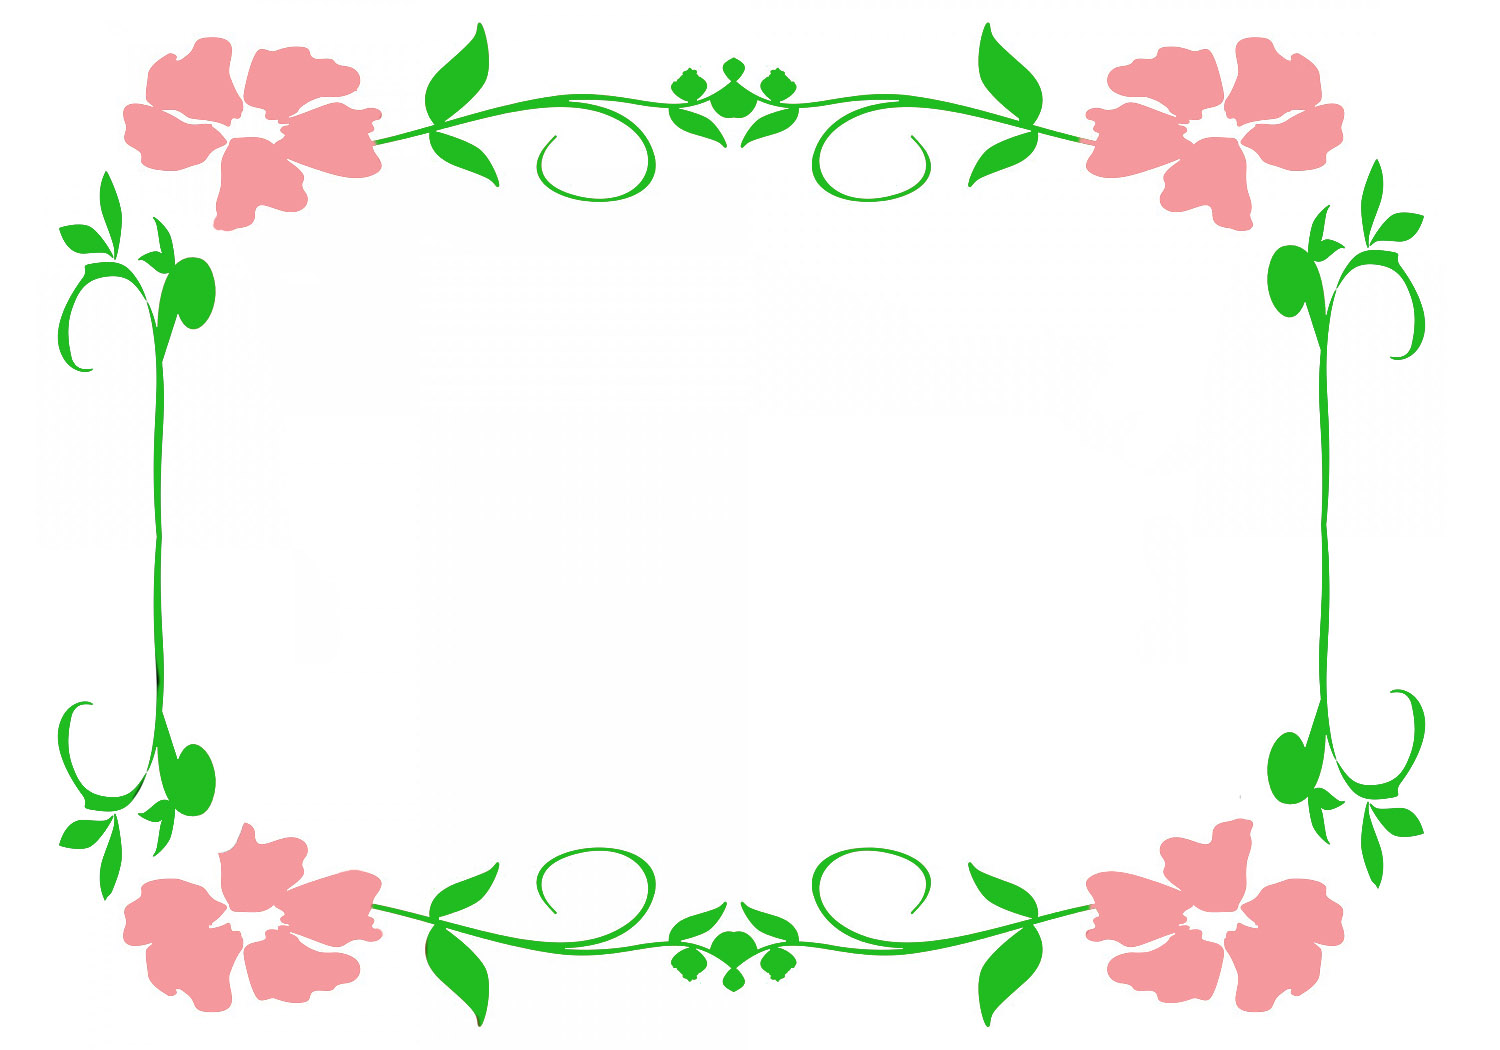 Frames clipart flower. Borders and frame with